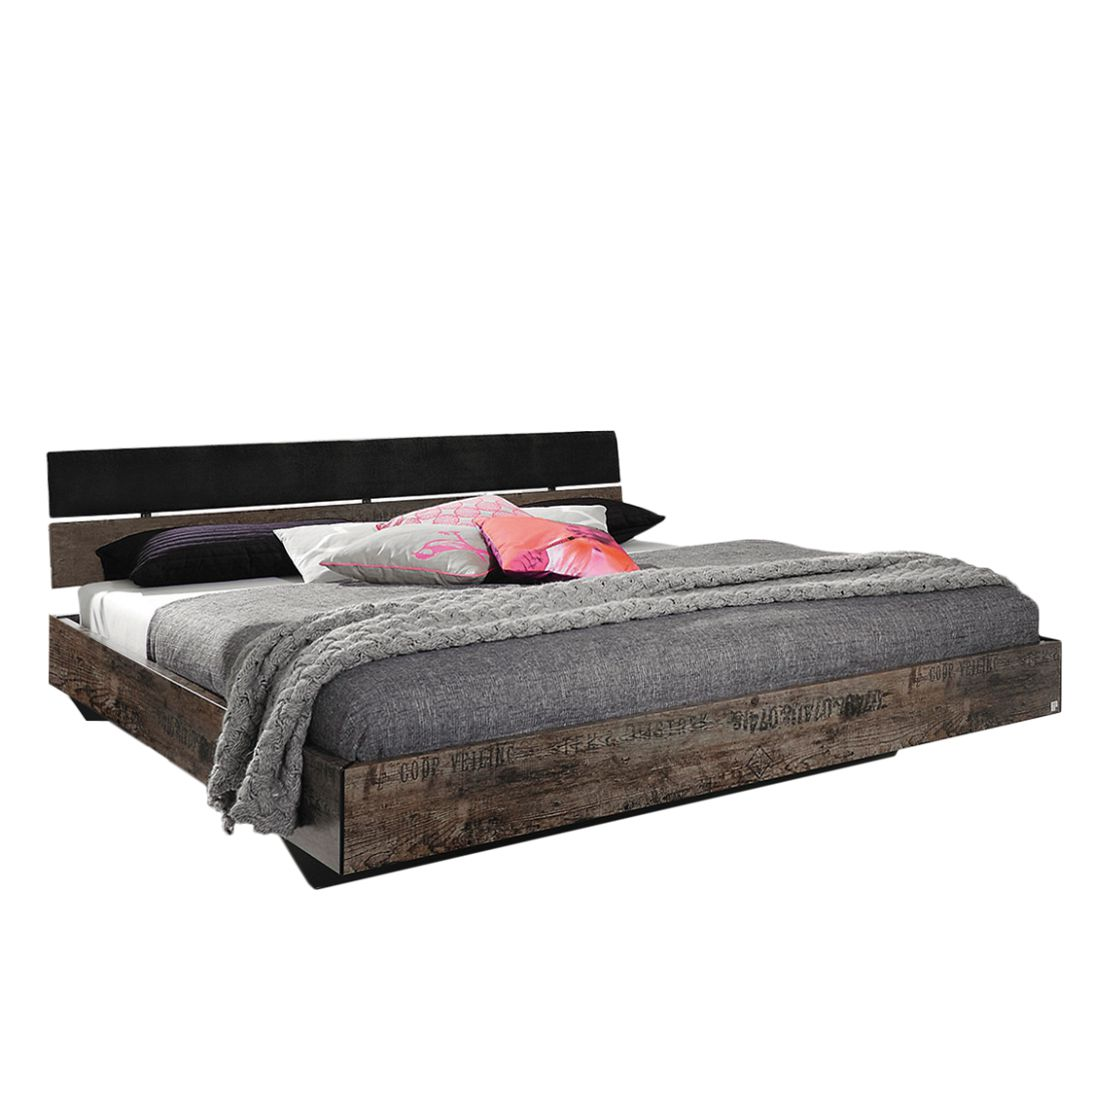 twijfelaar bed 120x200 ikea kopen online internetwinkel. Black Bedroom Furniture Sets. Home Design Ideas